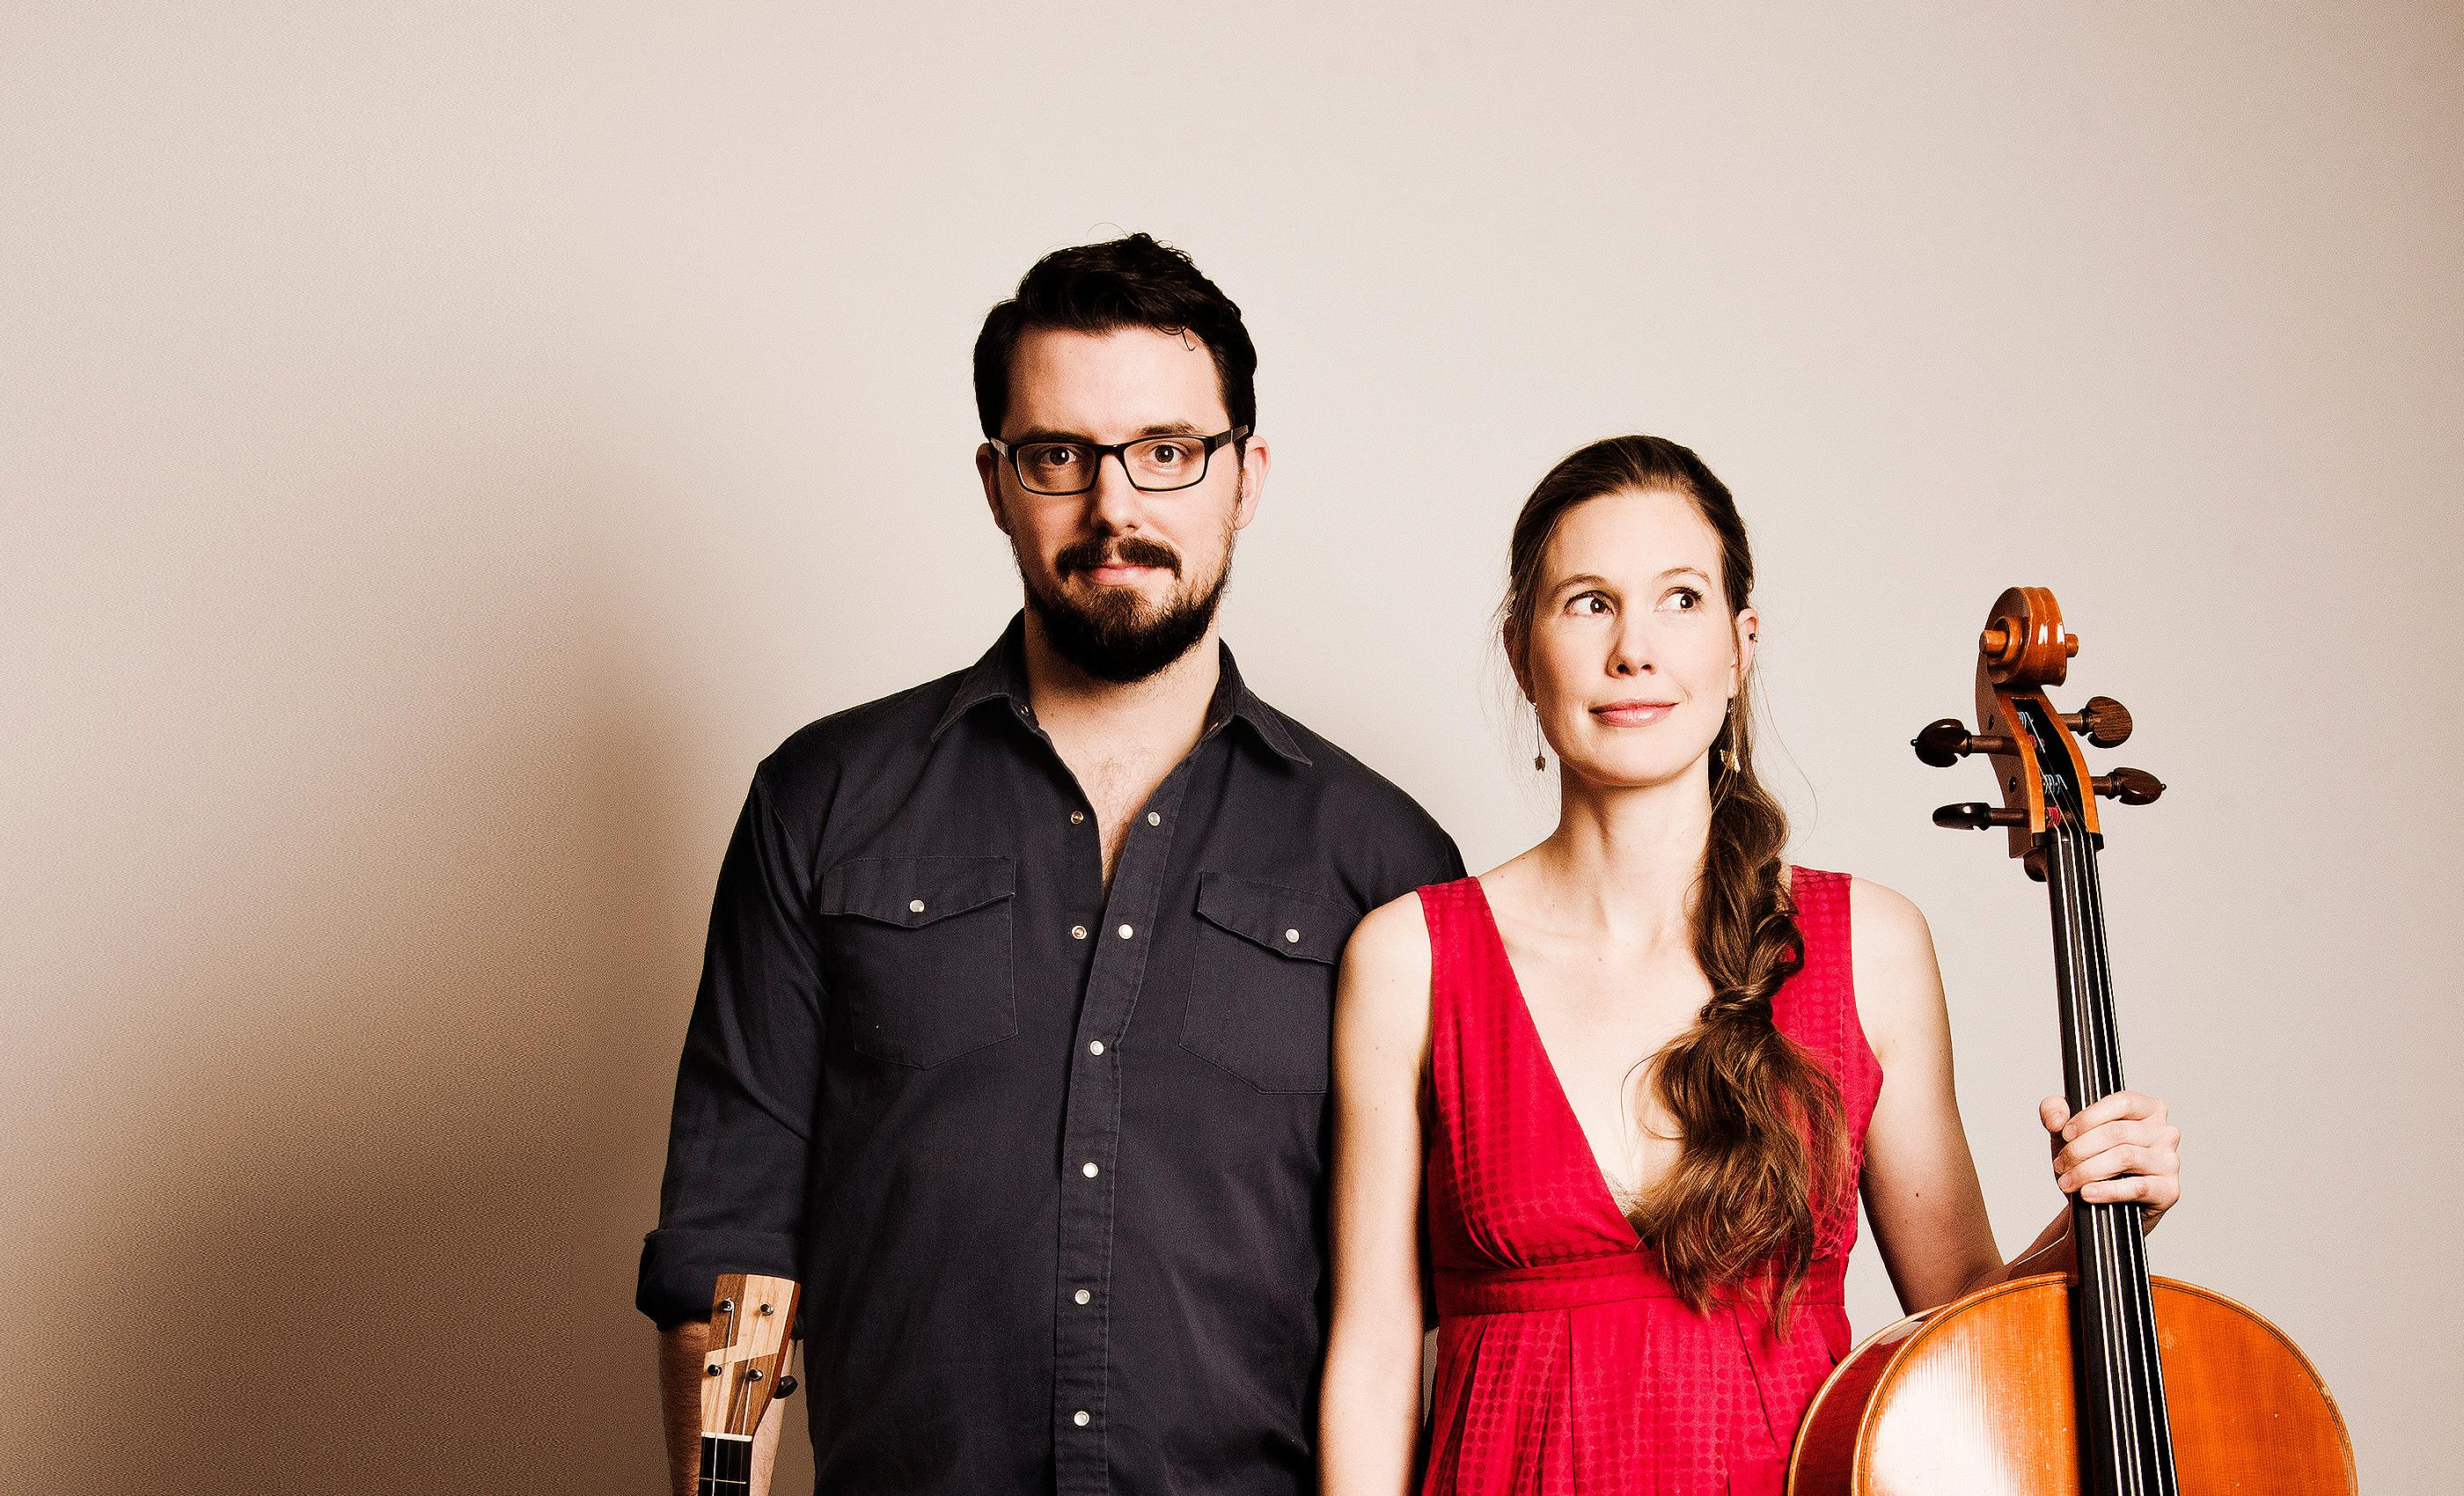 James Hill and Anne Janelle in Concert